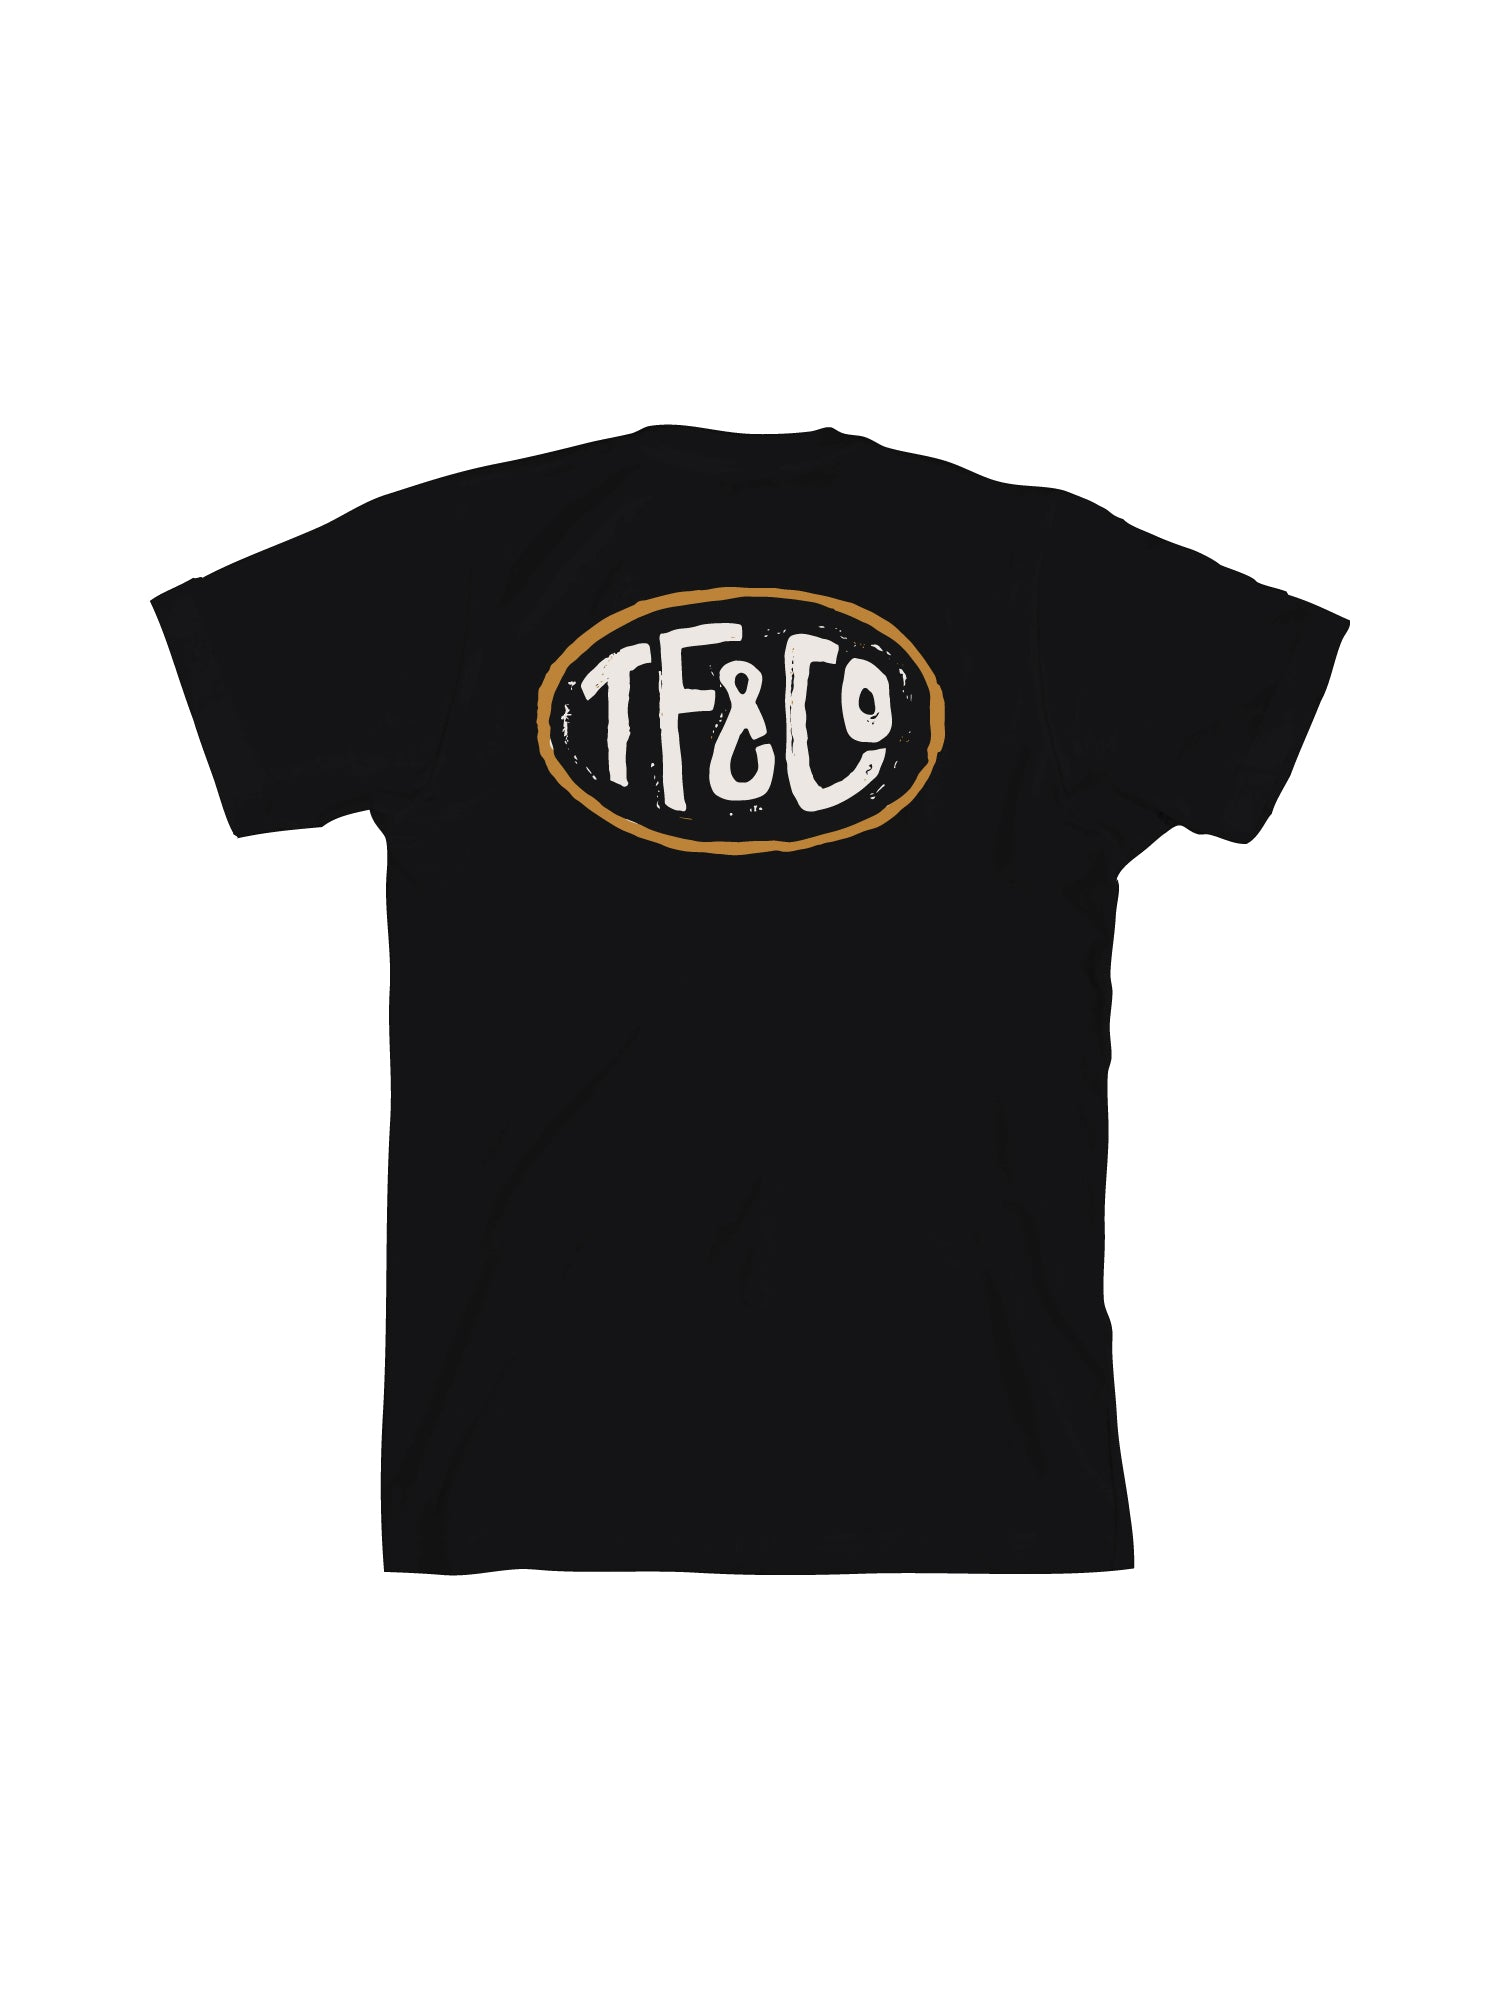 TF OVAL - BLACK - Tankfarm & Co.